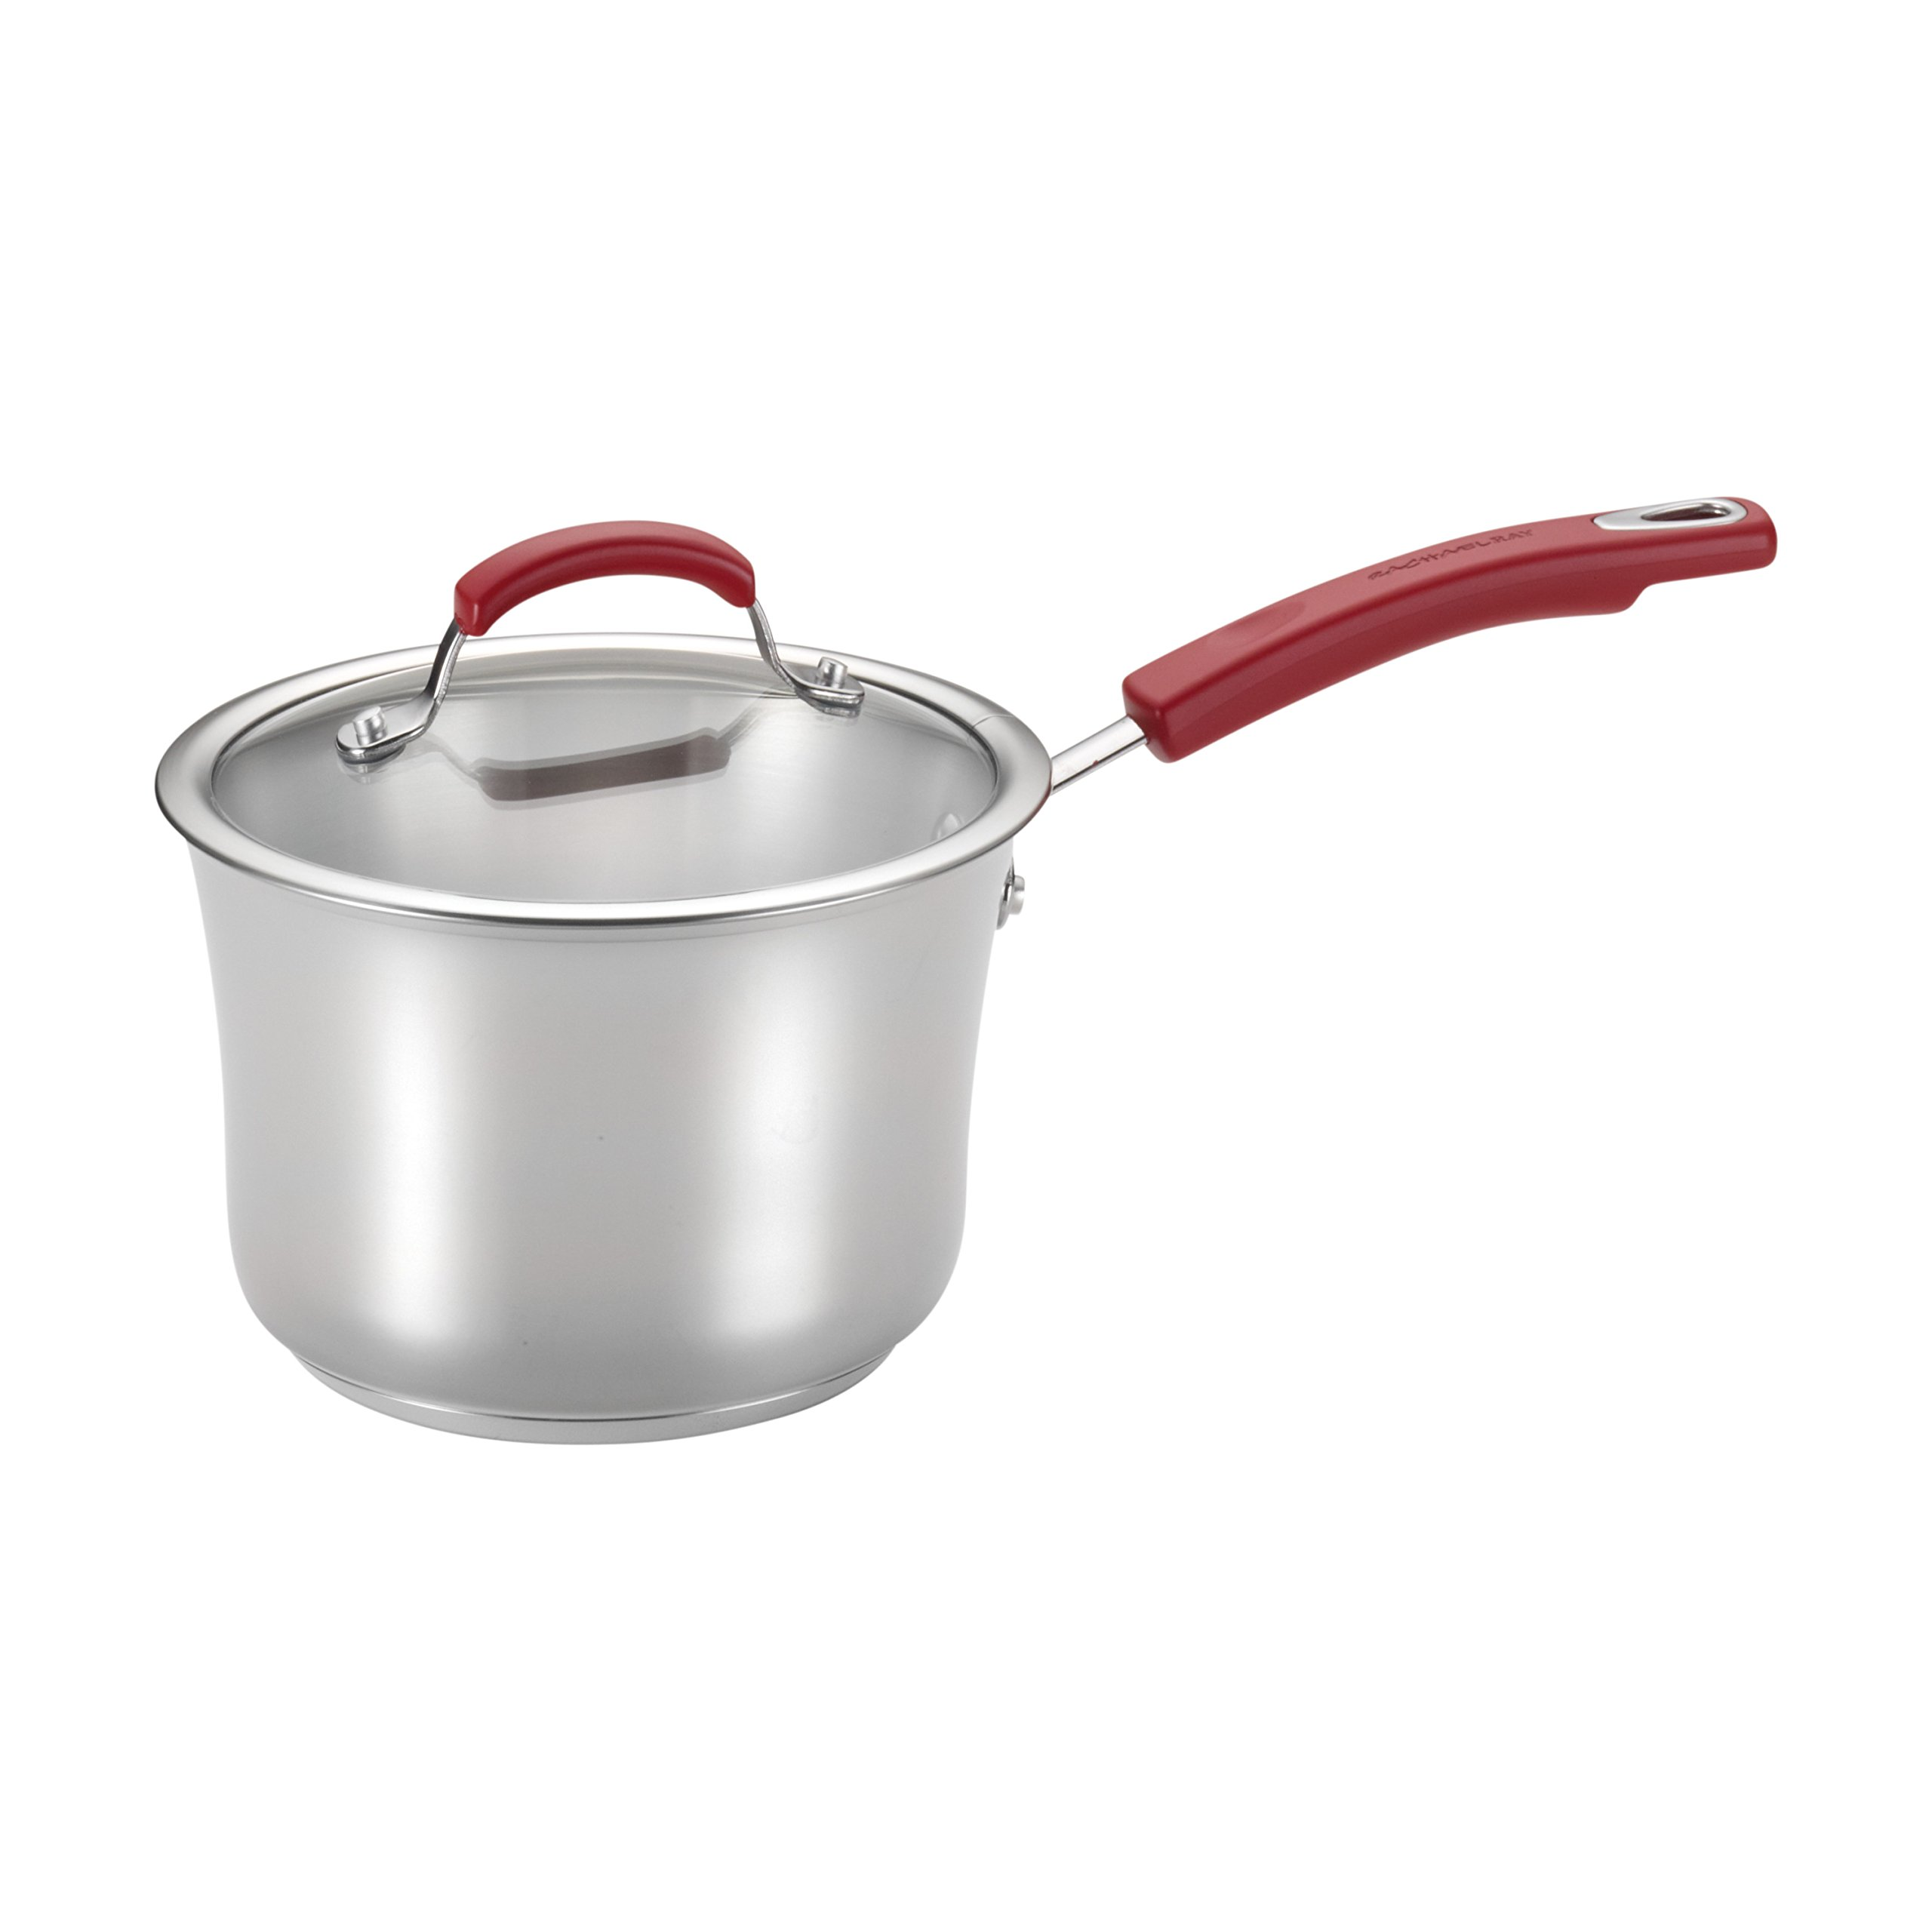 Rachael Ray Stainless Steel 3.5-Quart Covered Saucepan, Red Handles